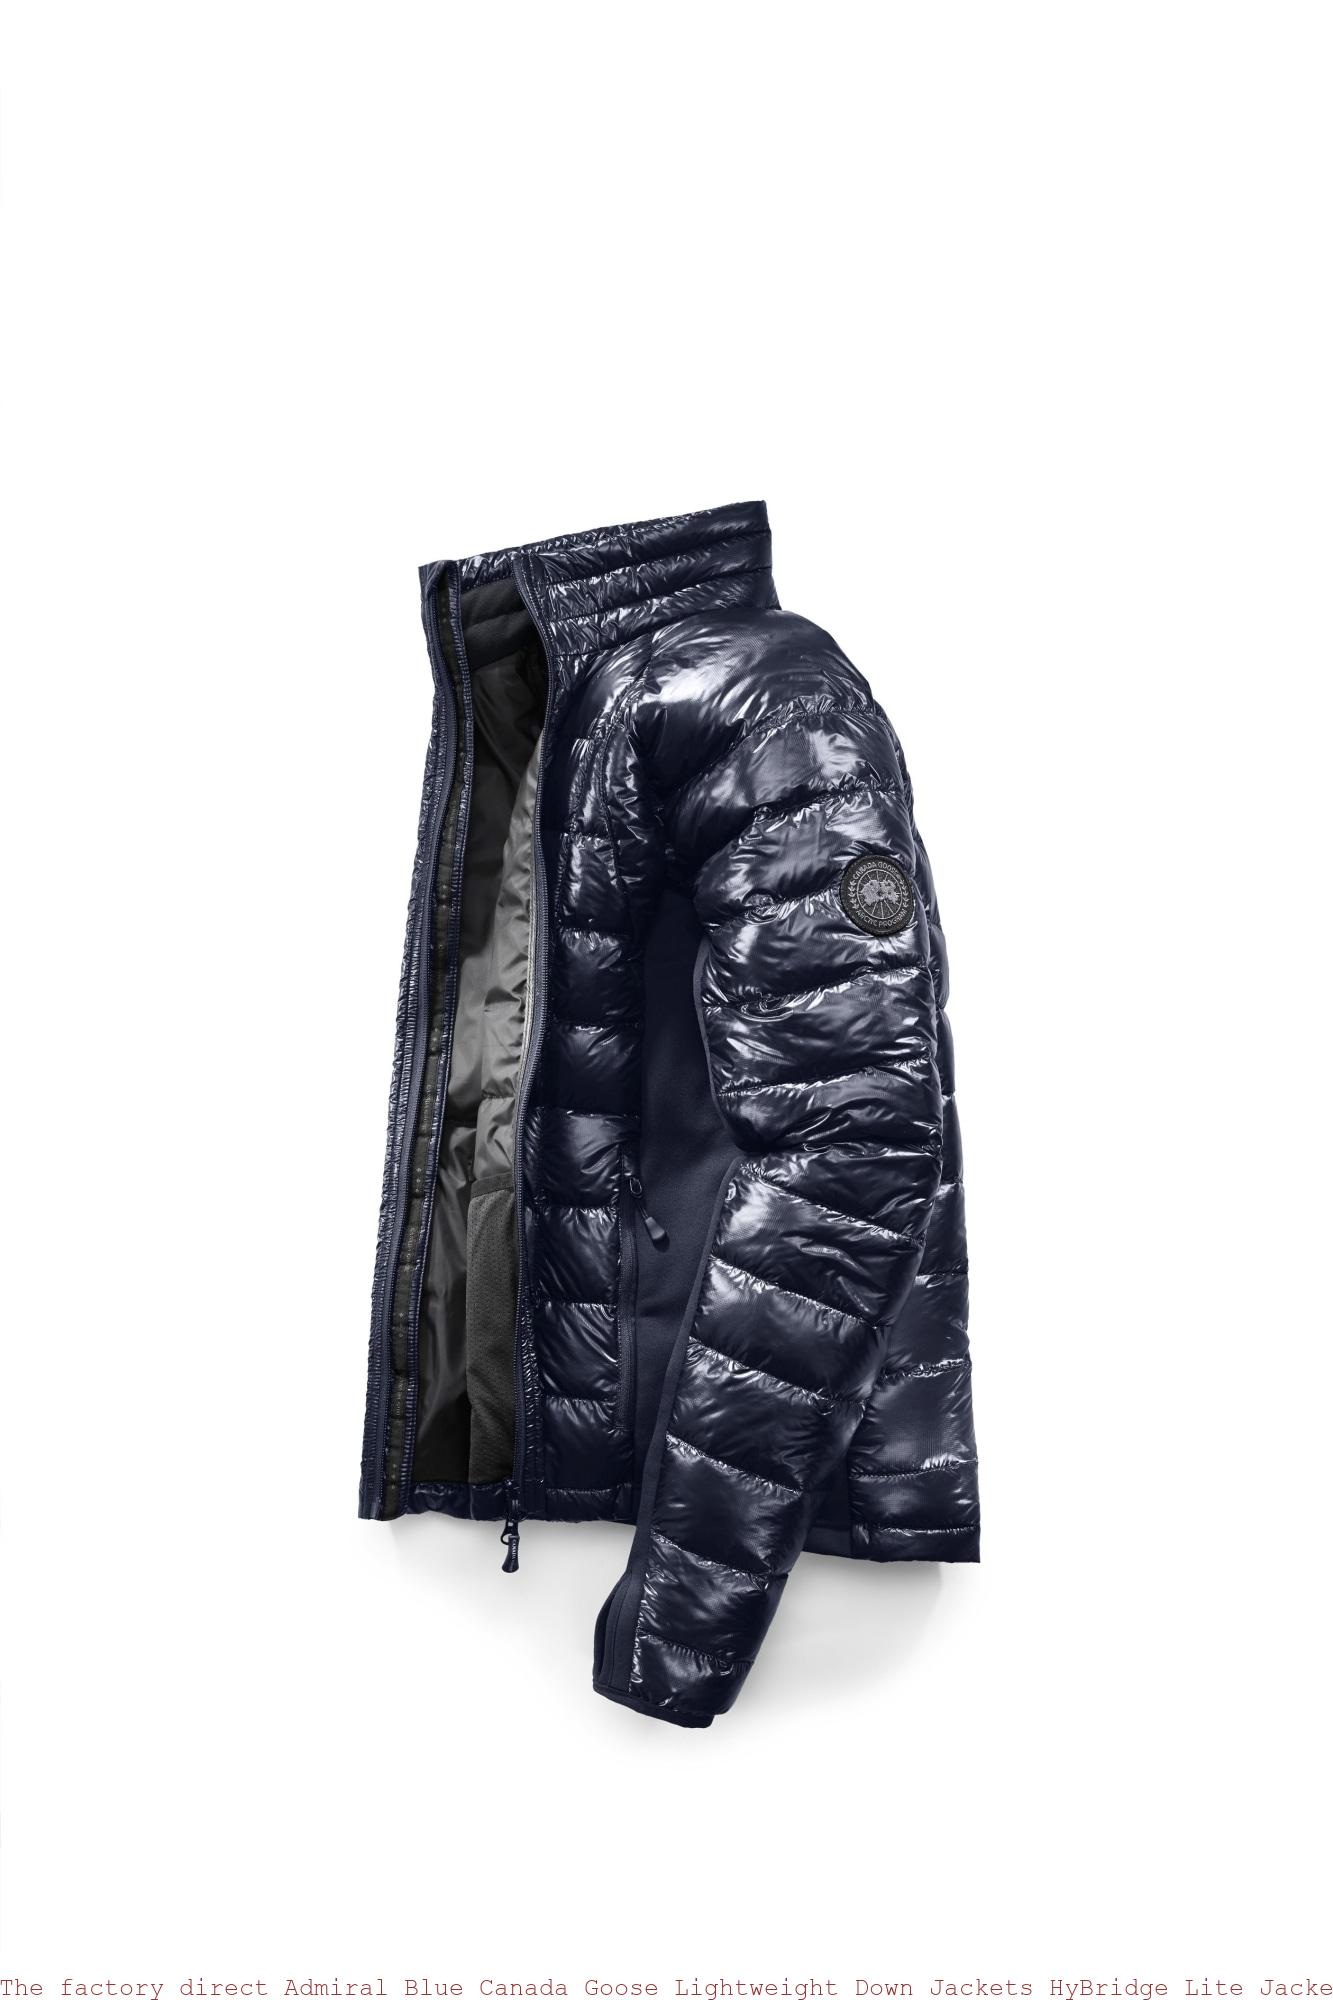 7373a1e6594 The factory direct Admiral Blue Canada Goose Lightweight Down Jackets HyBridge  Lite Jacket Black Label Cheap Canada Goose China 2701MB